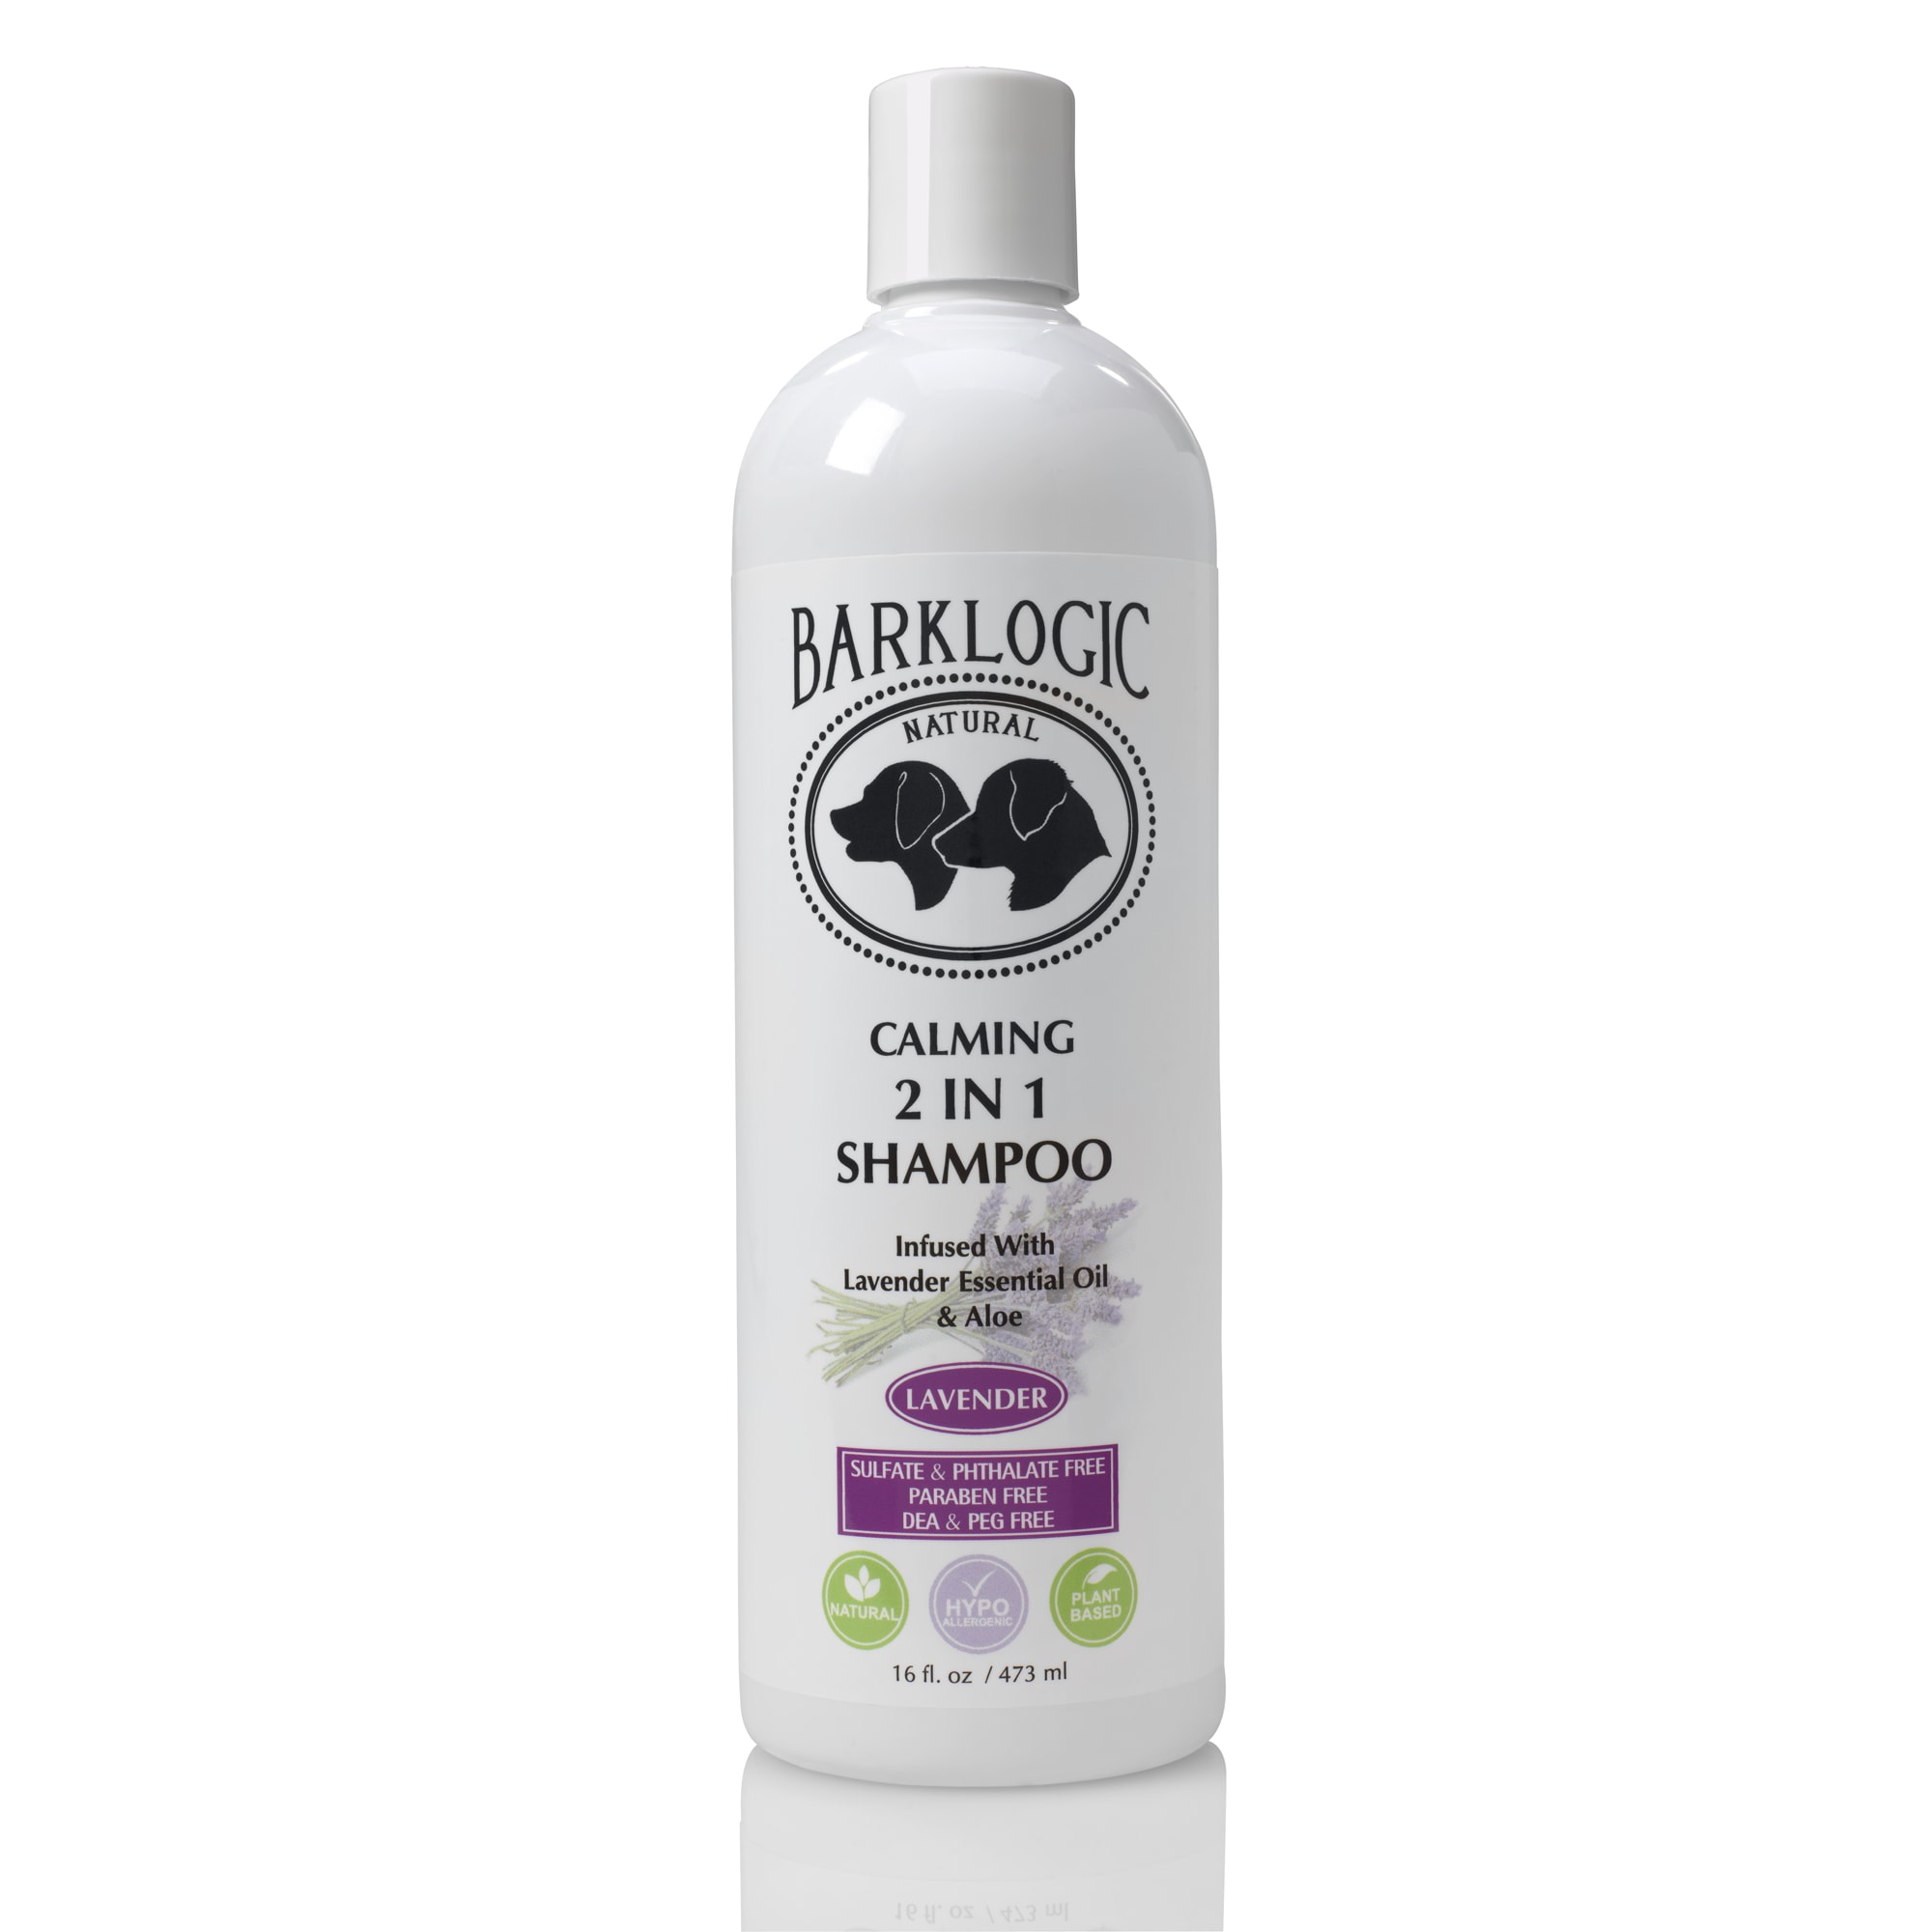 Barklogic Calming 2 in 1 Shampoo